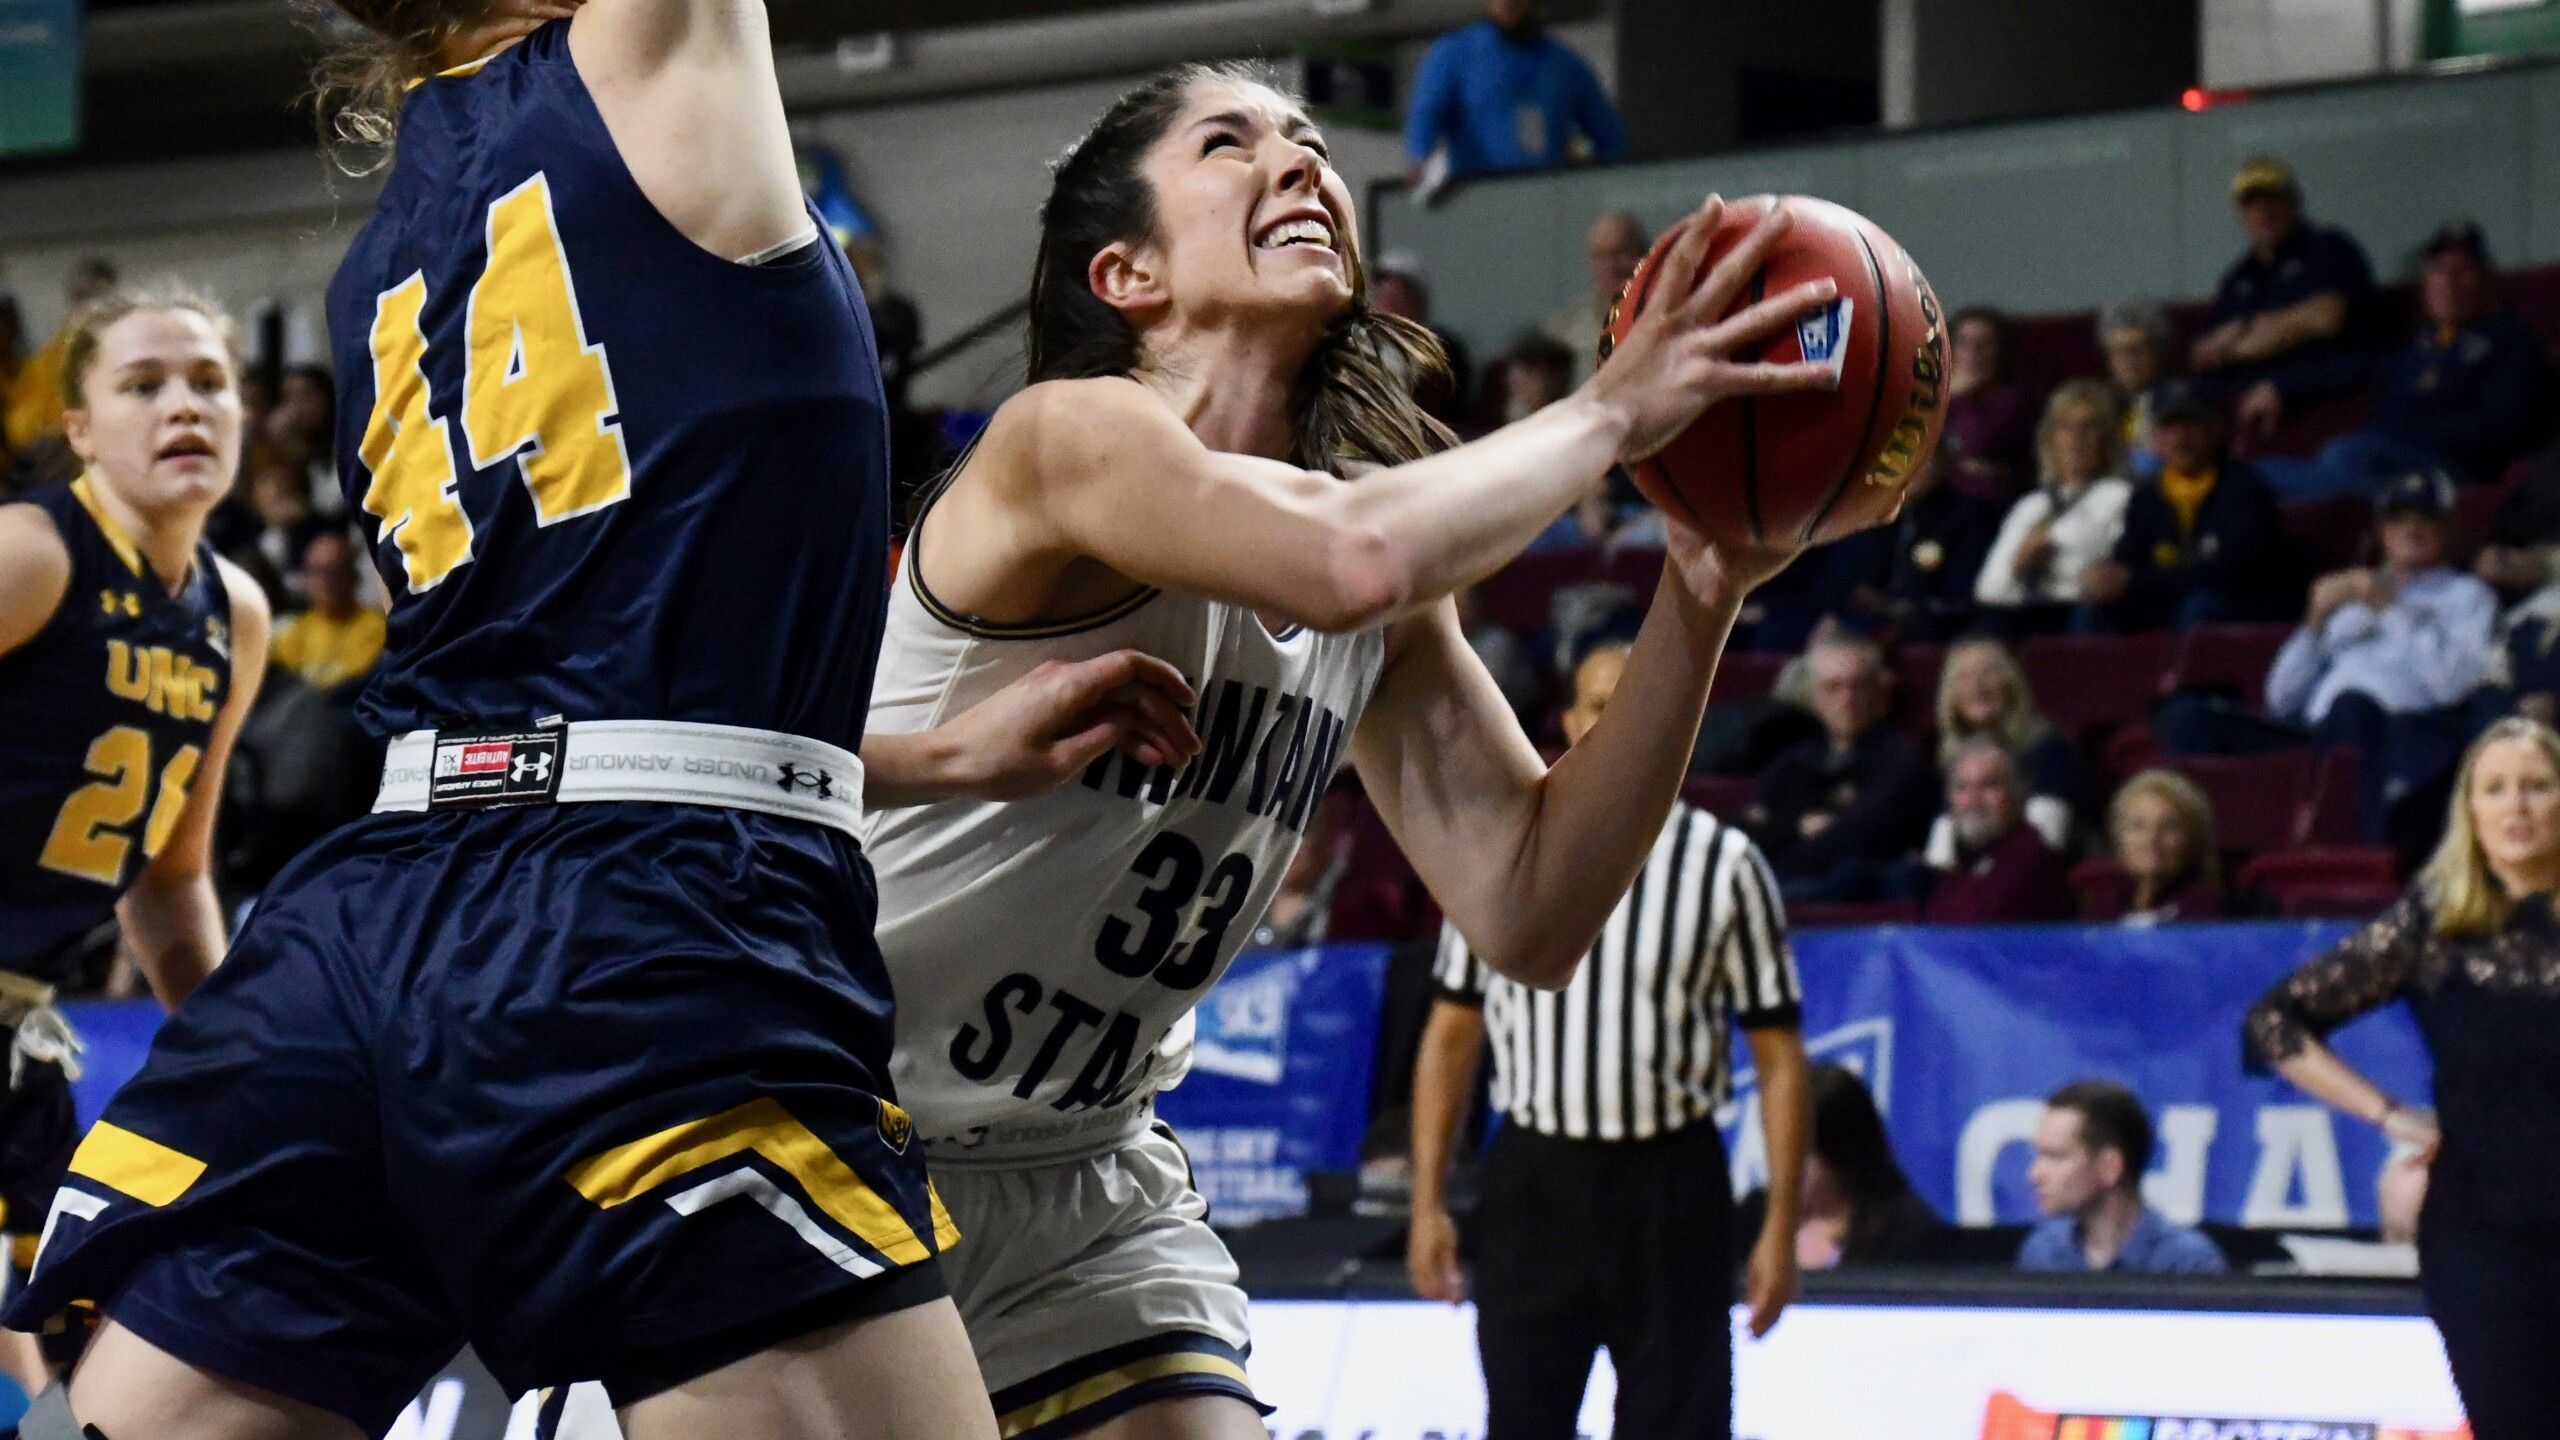 Montana State vs. Northern Colorado - Big Sky Conference women's basketball quarterfinal at Century Link Arena in Boise